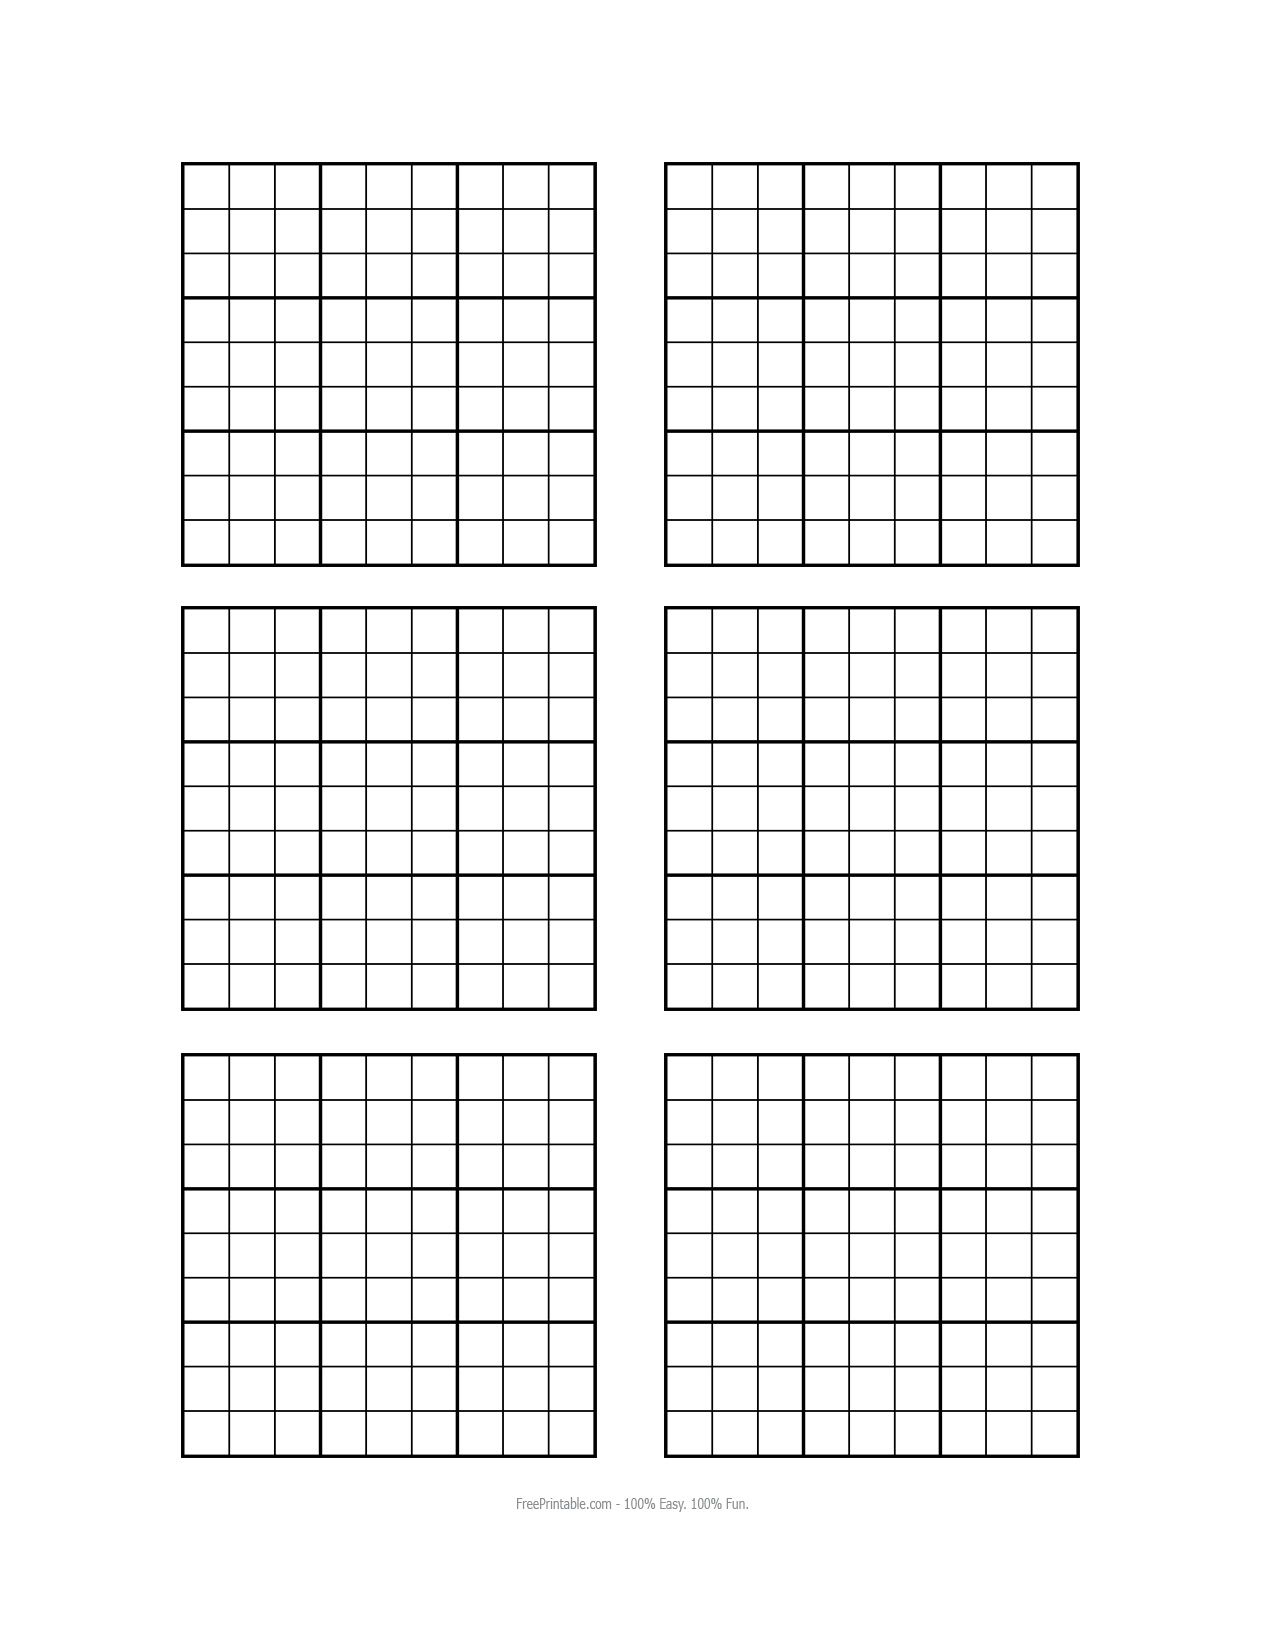 graphic regarding Blank Sudoku Grid Printable identified as Totally free Printable Blank Sudoku Grids Misc Things Grid paper